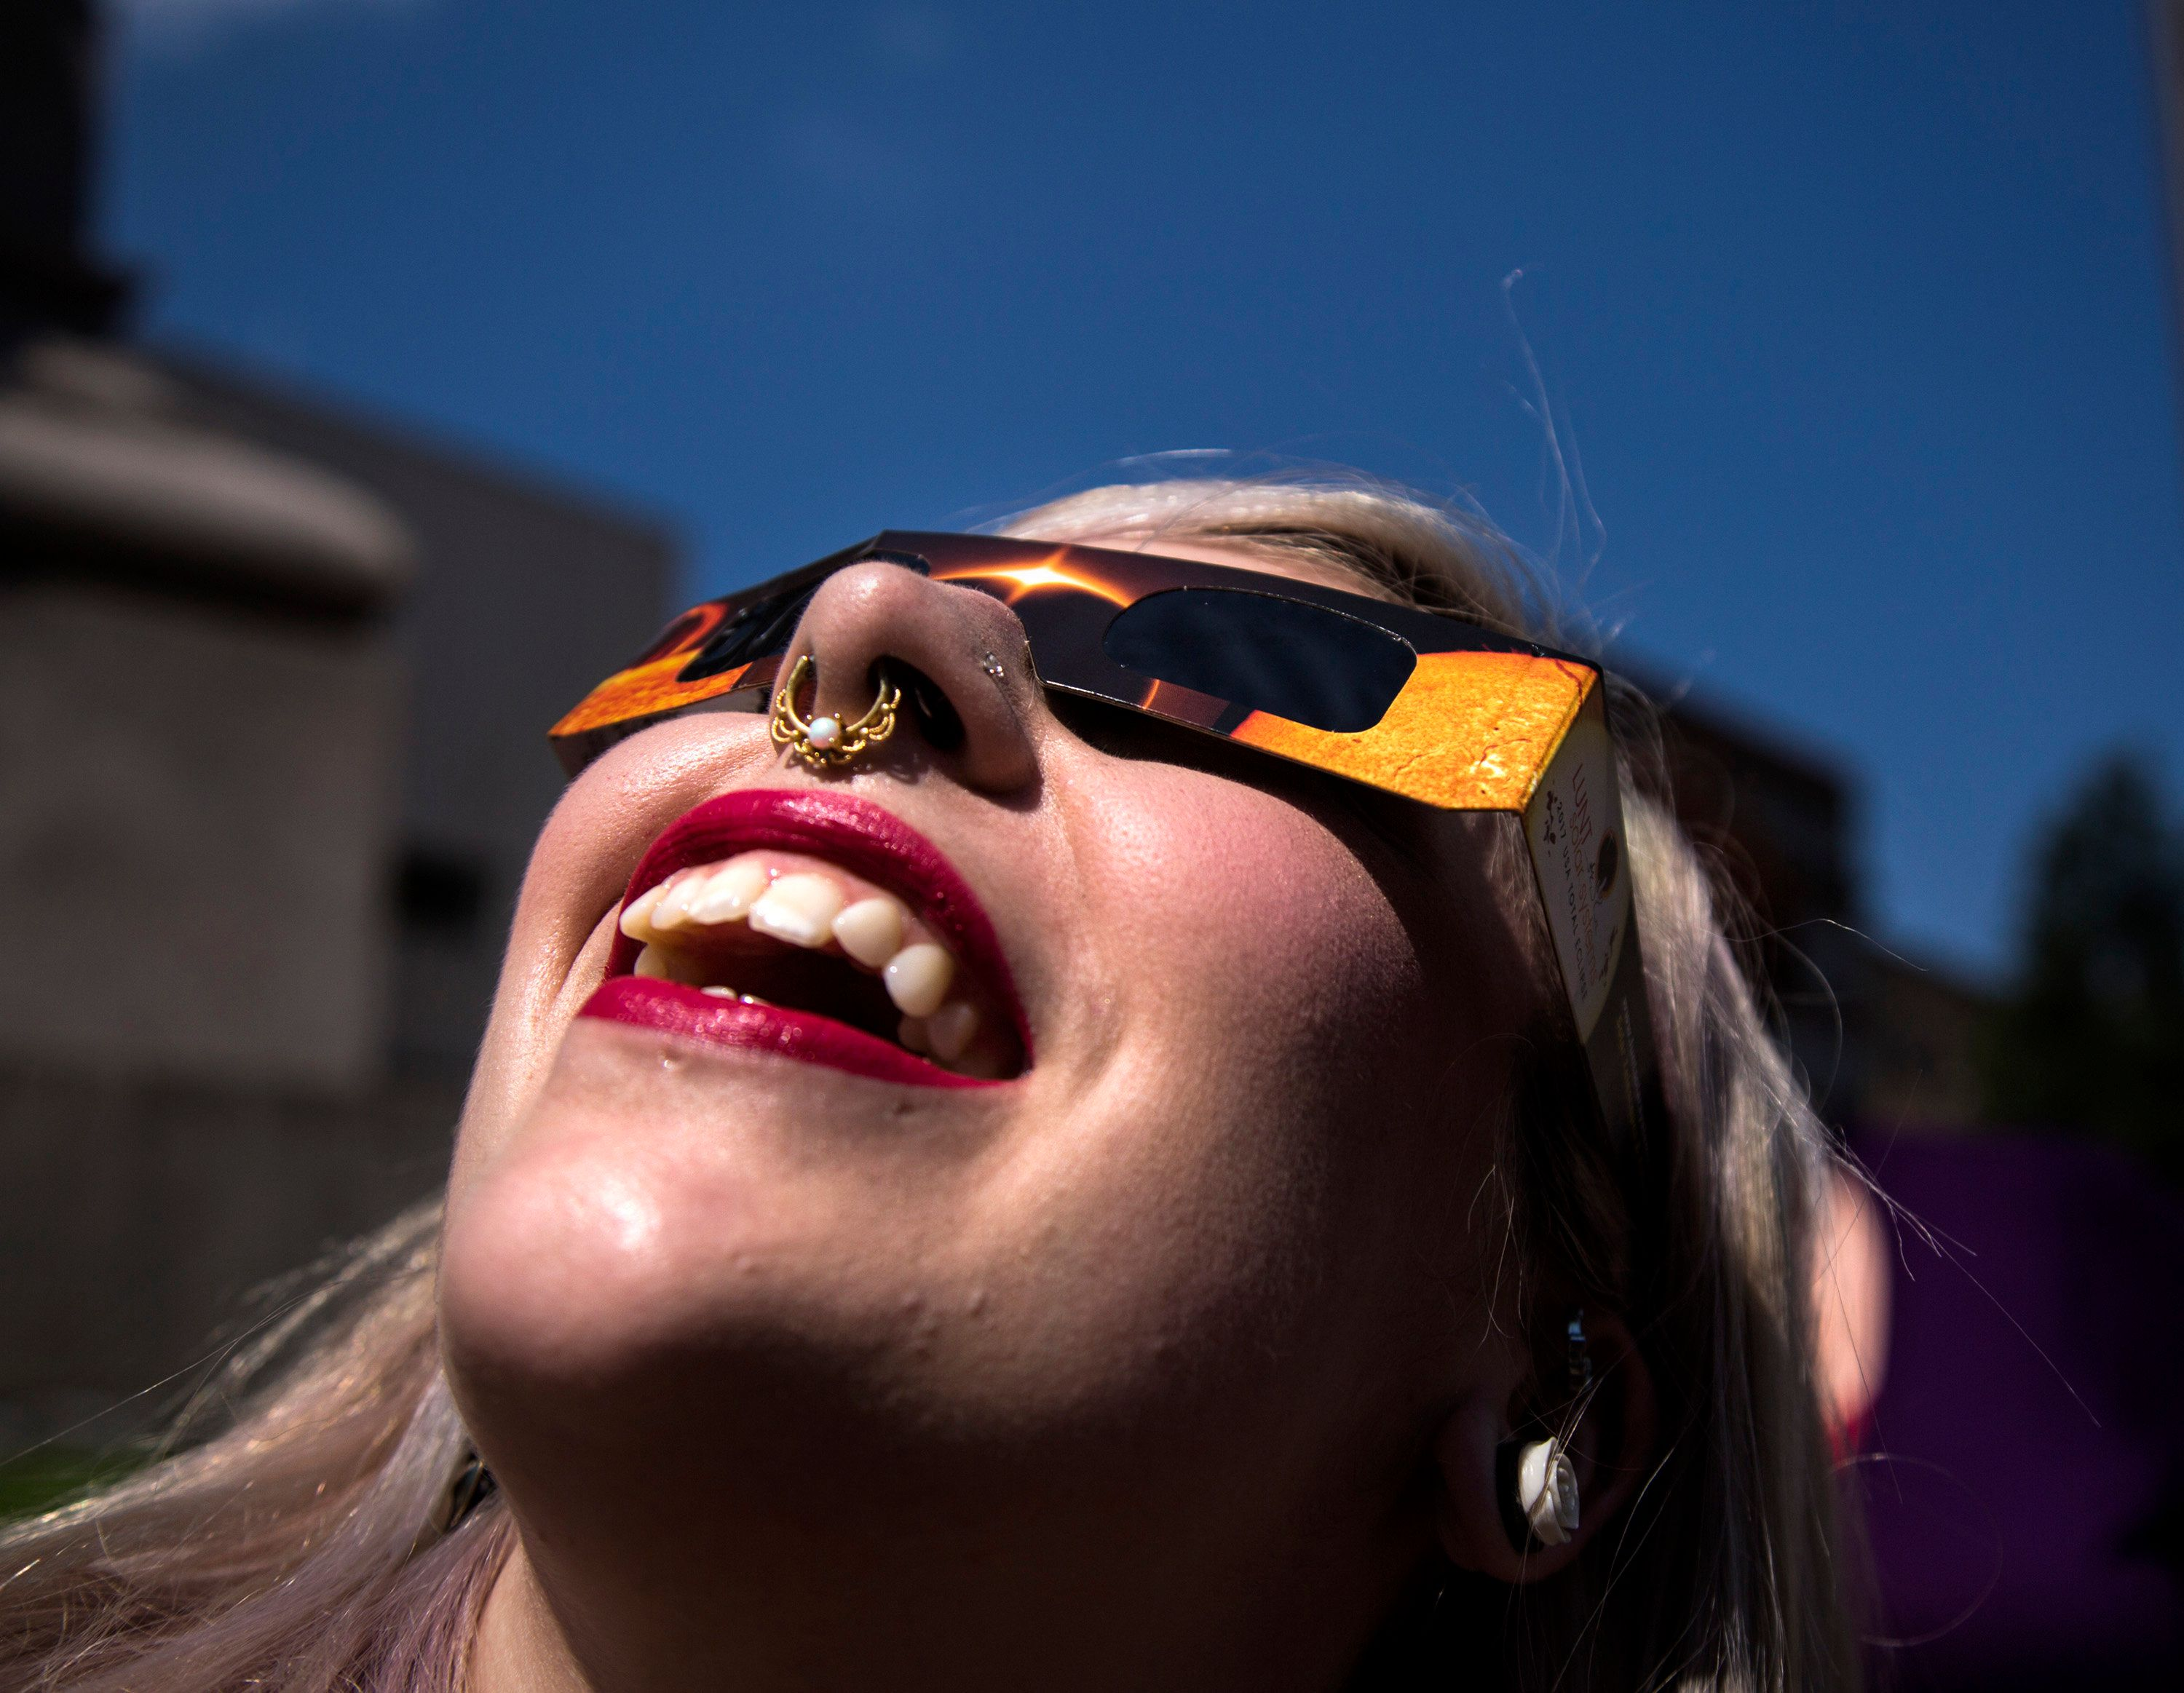 PORTLAND, ME - AUGUST 21: Angela Dispirito of Ware, N.H. watches the eclipse through solar glasses at Monument Square on Monday, August 21, 2017. (Staff photo by Derek Davis/Portland Press Herald via Getty Images)